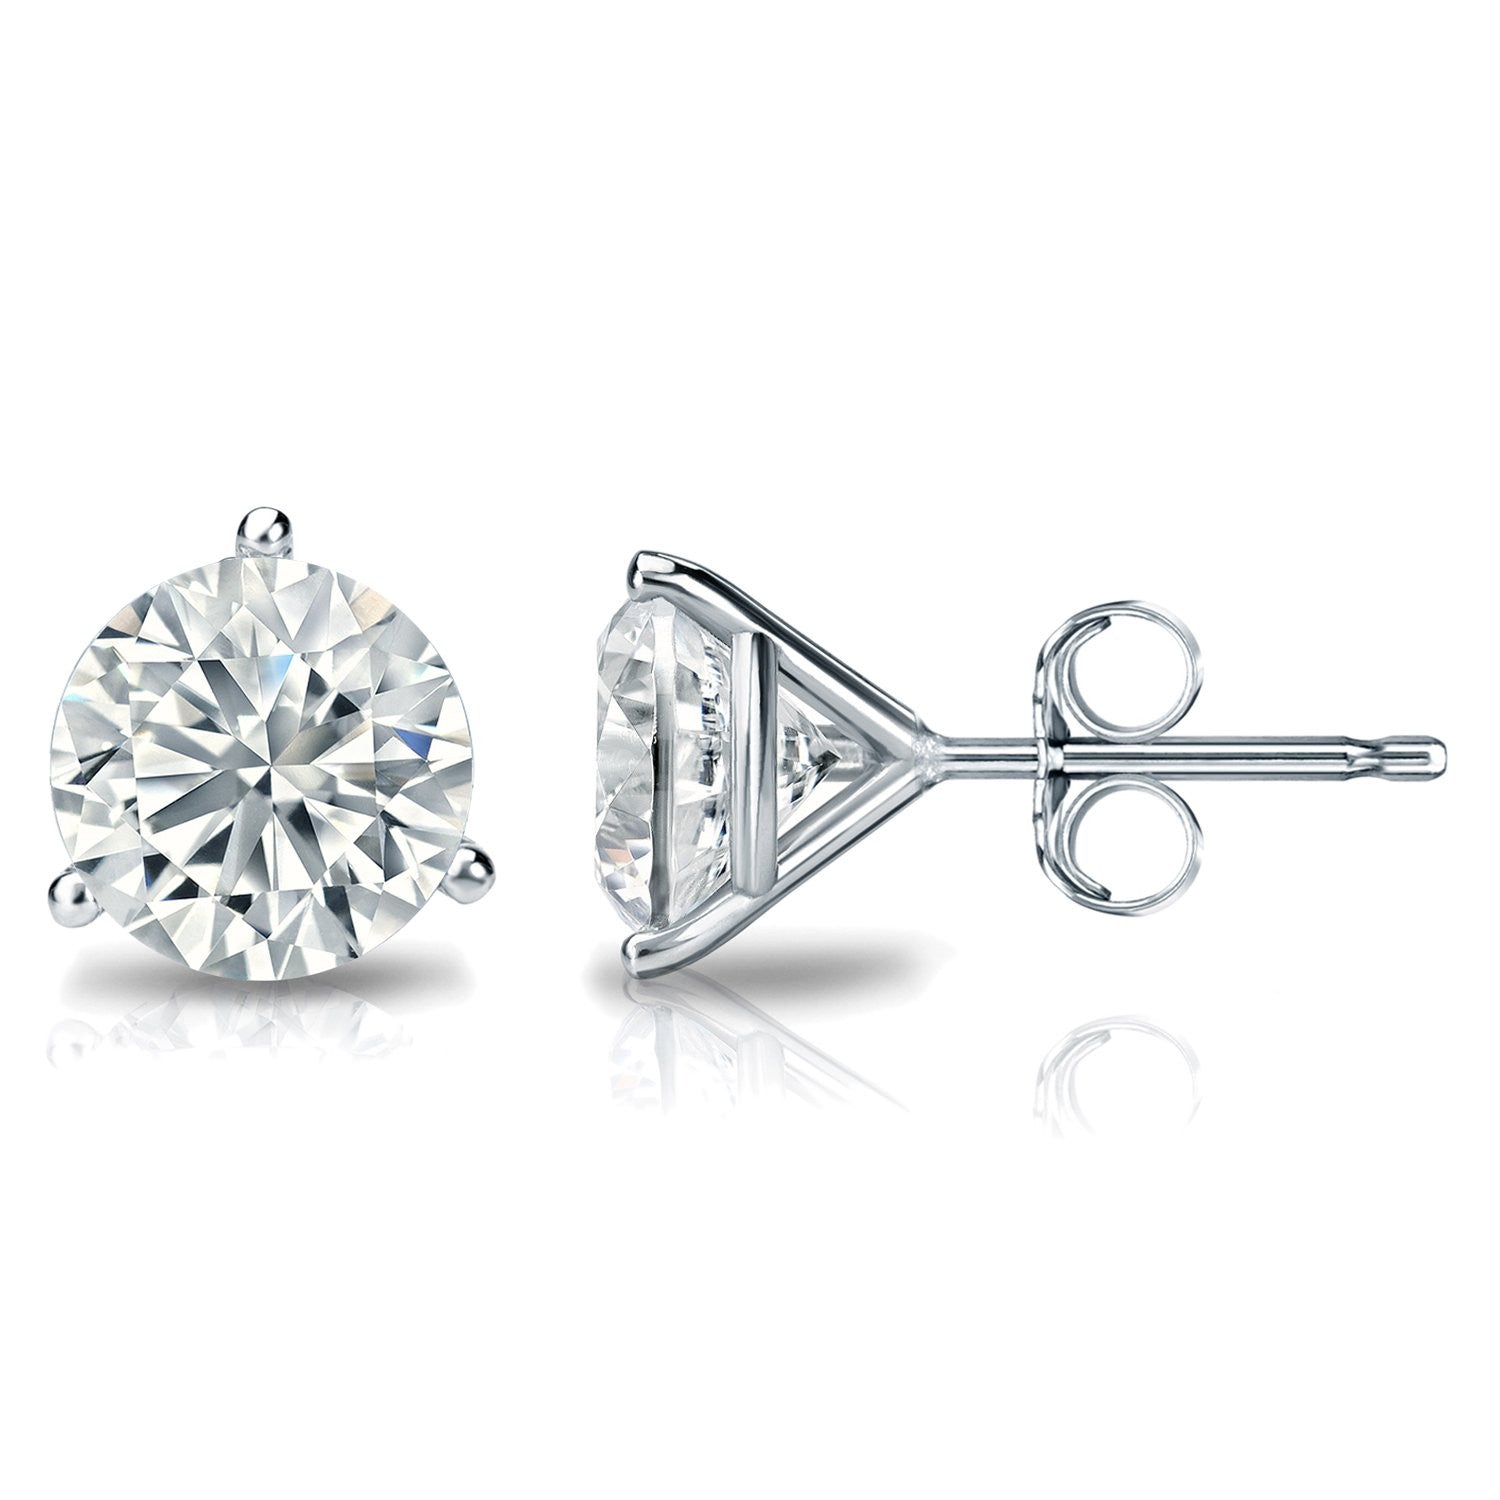 1 ¼ Carat Round 14K White Gold 3 Prong Martini Set Diamond Solitaire Stud Earrings (Premium Quality)